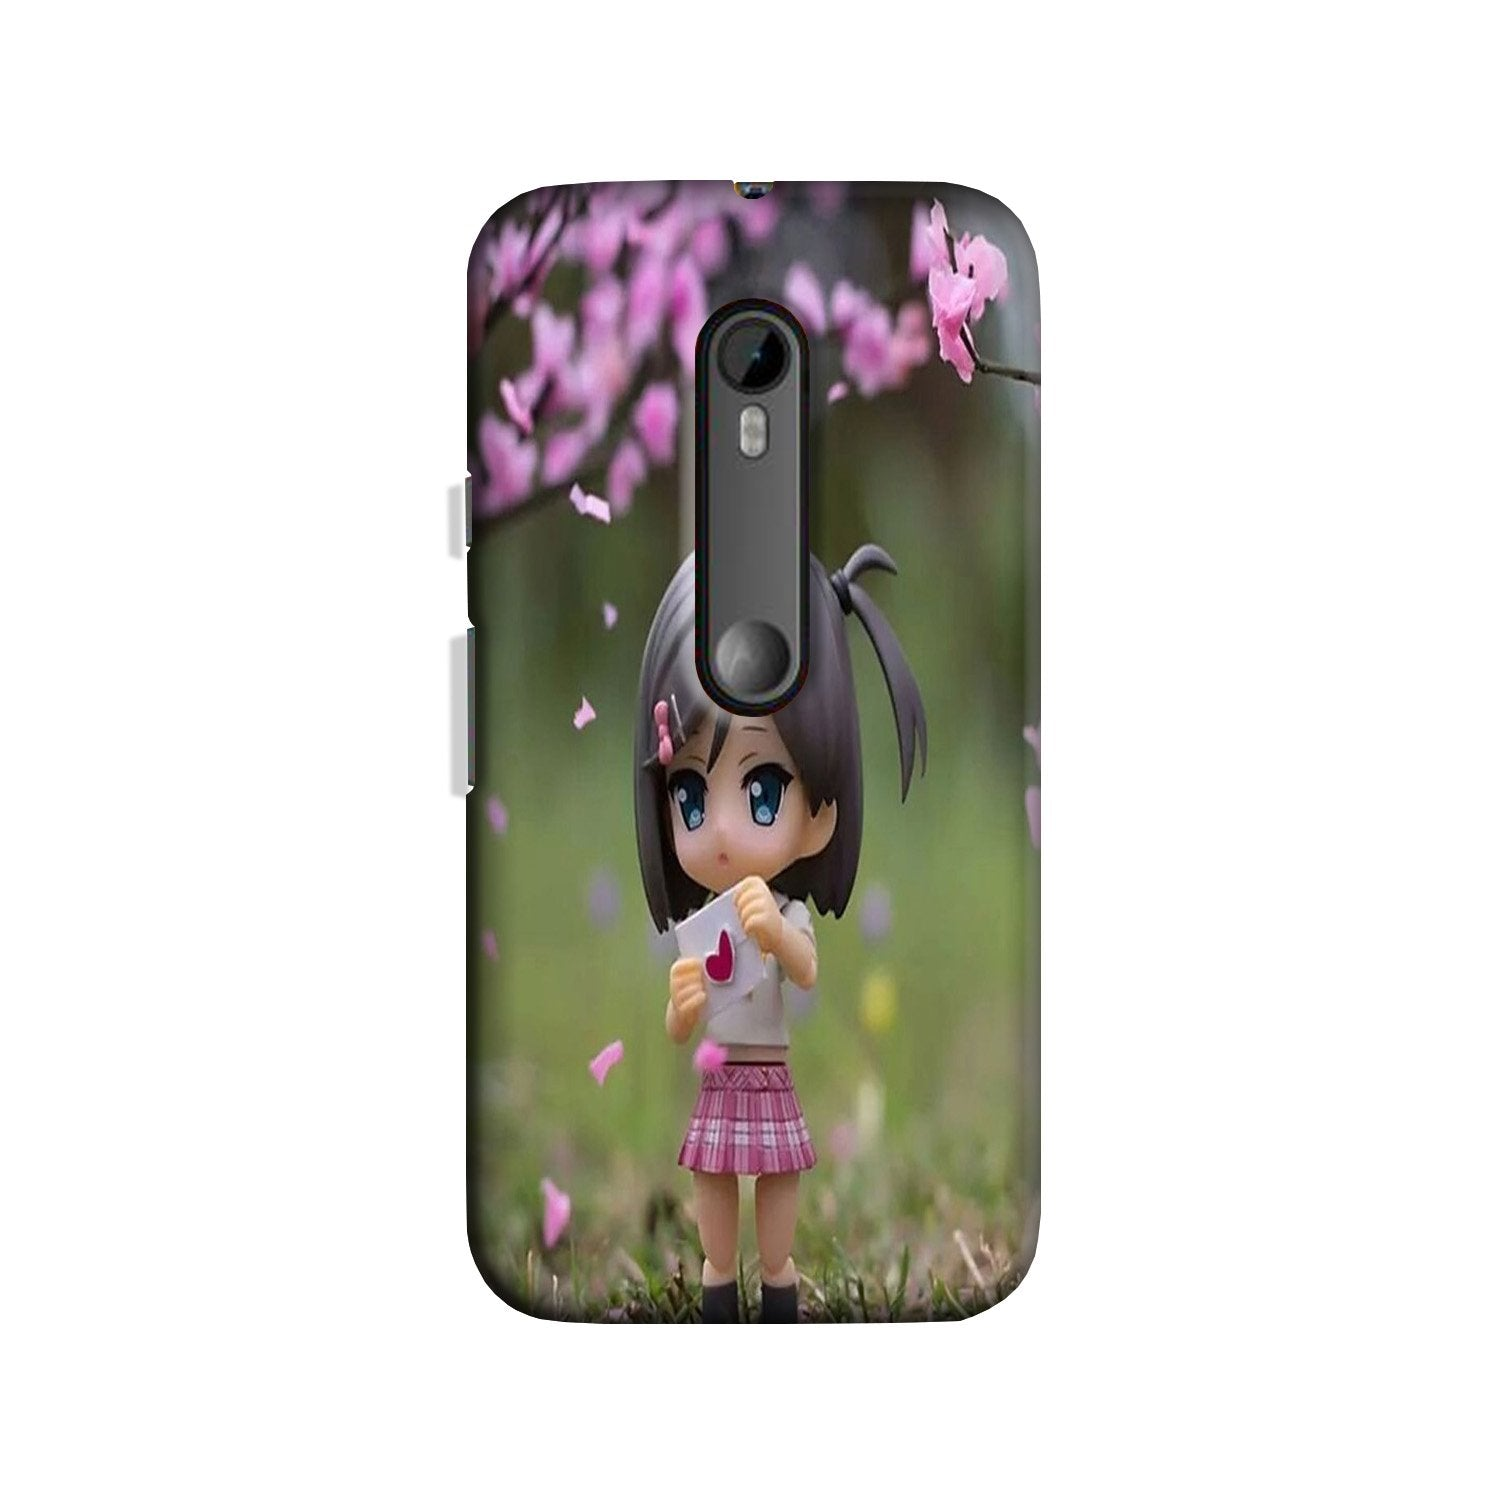 Cute Girl Case for Moto G 3rd Gen